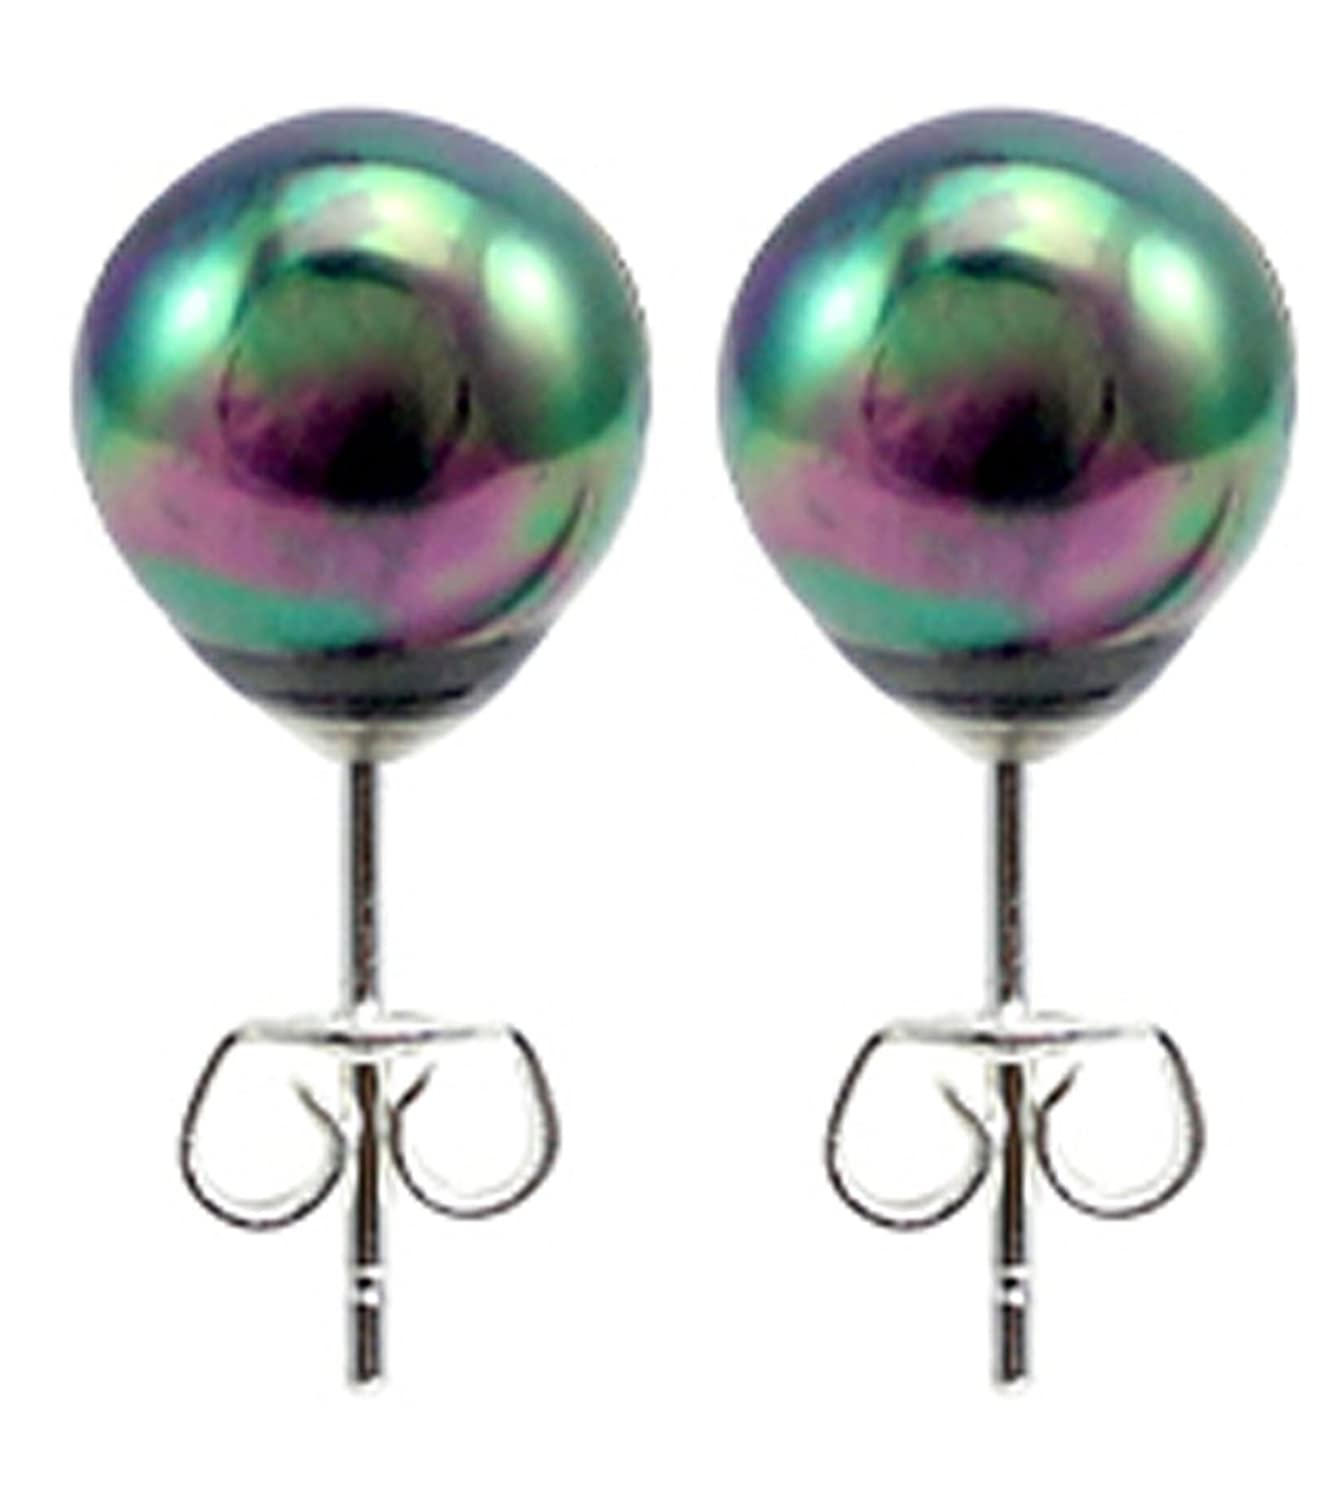 dana simulated s buchman pin earrings green women abalone stud asymmetrical